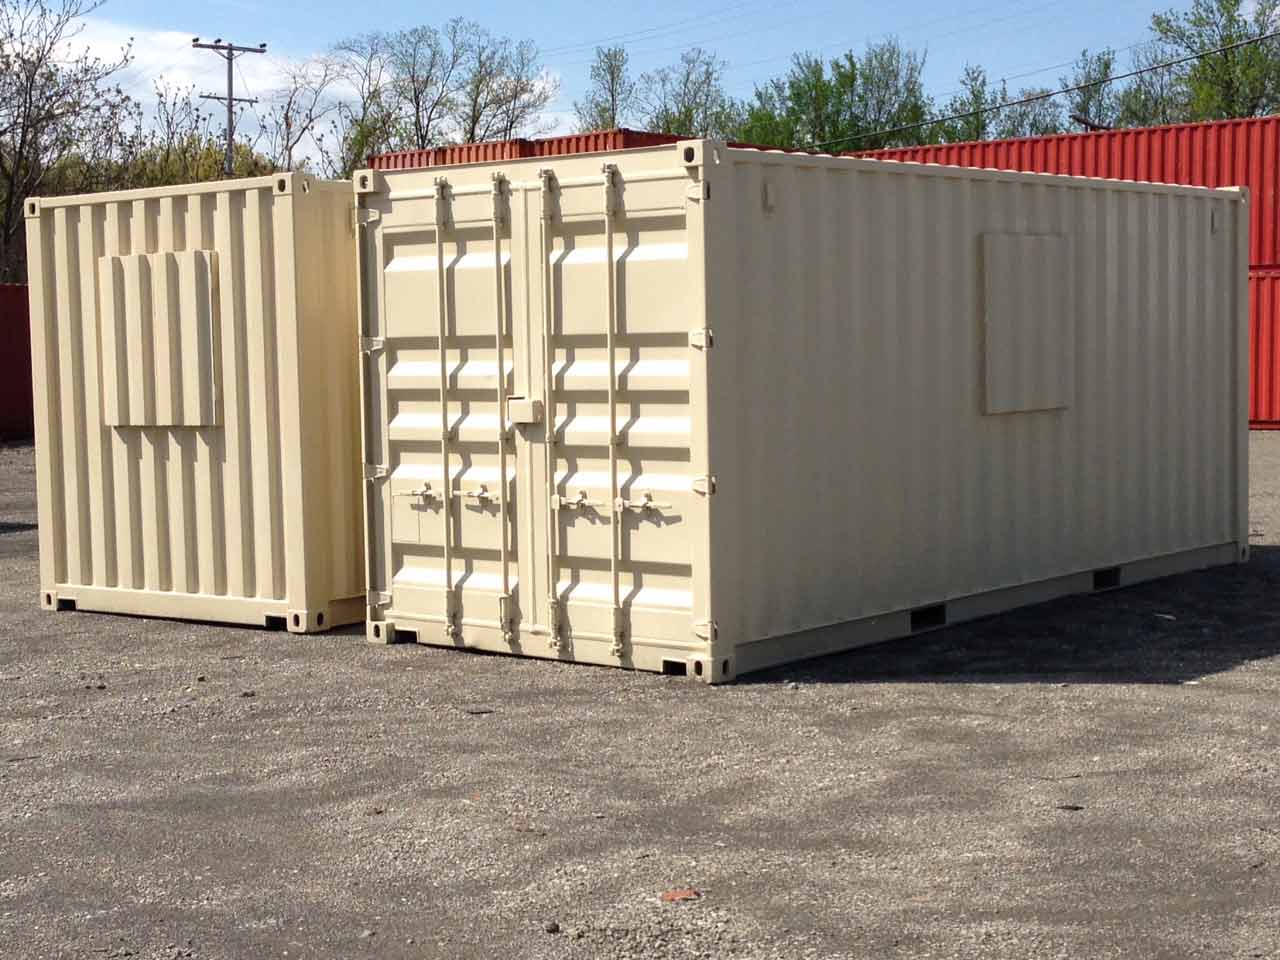 20′ Freight Containers with Covered Openings